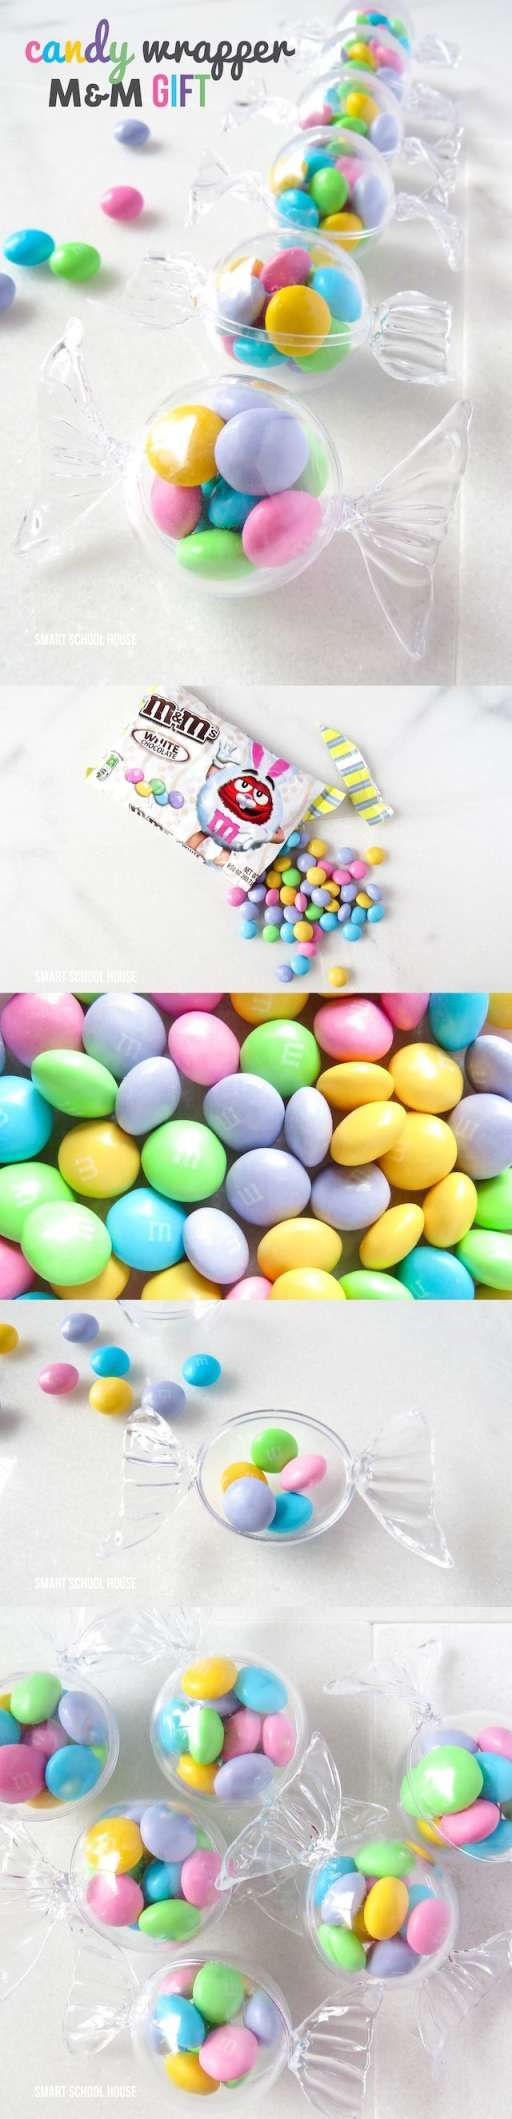 Candy wrapper M&M gift or party favor! Made with white chocolate M&Ms and plastic candy wrapper containers (see where to find them here)